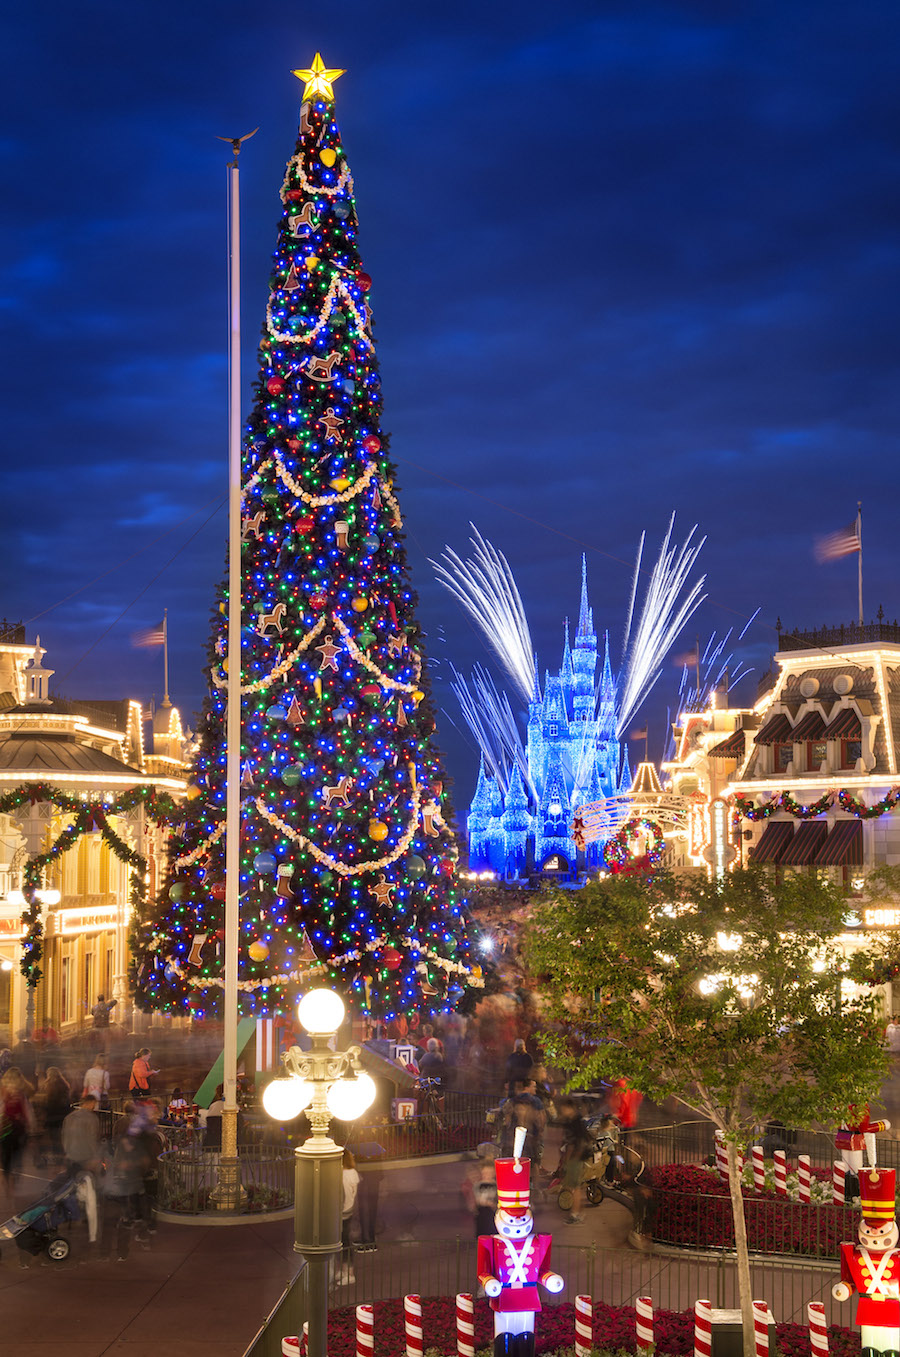 magic kingdom christmas tree - When Does Disneyworld Decorate For Christmas